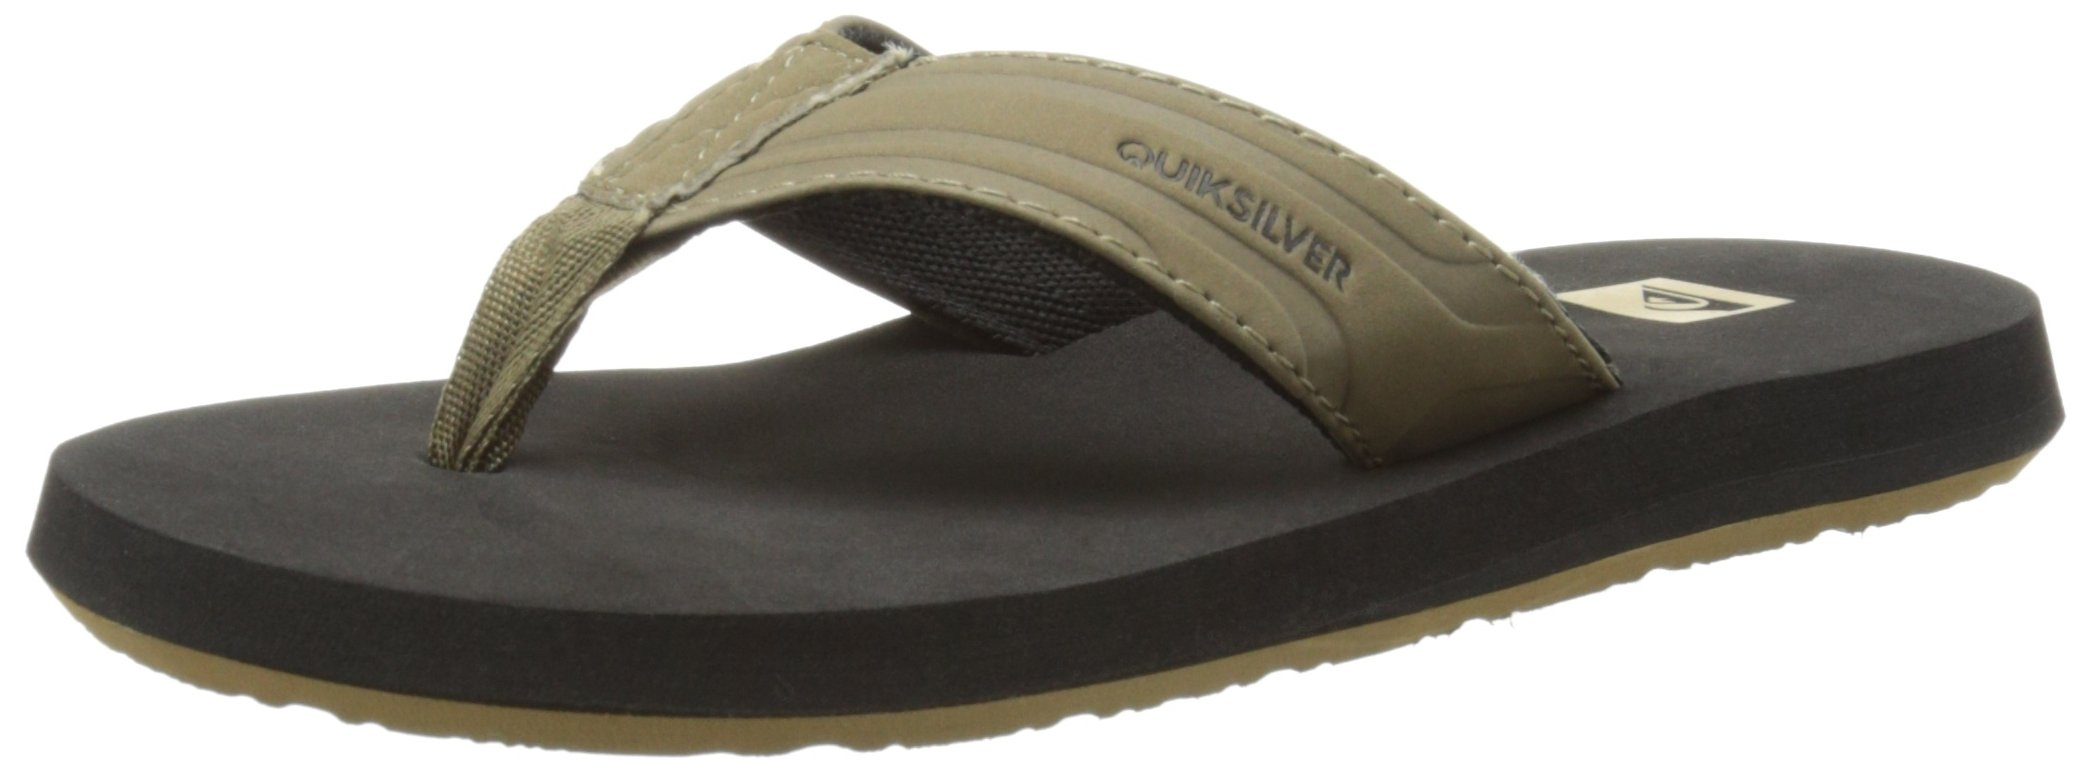 Quiksilver Monkey Wrench Youth Sandal (Toddler/Little Kid/Big Kid), Tan Solid, 10 M US Toddler